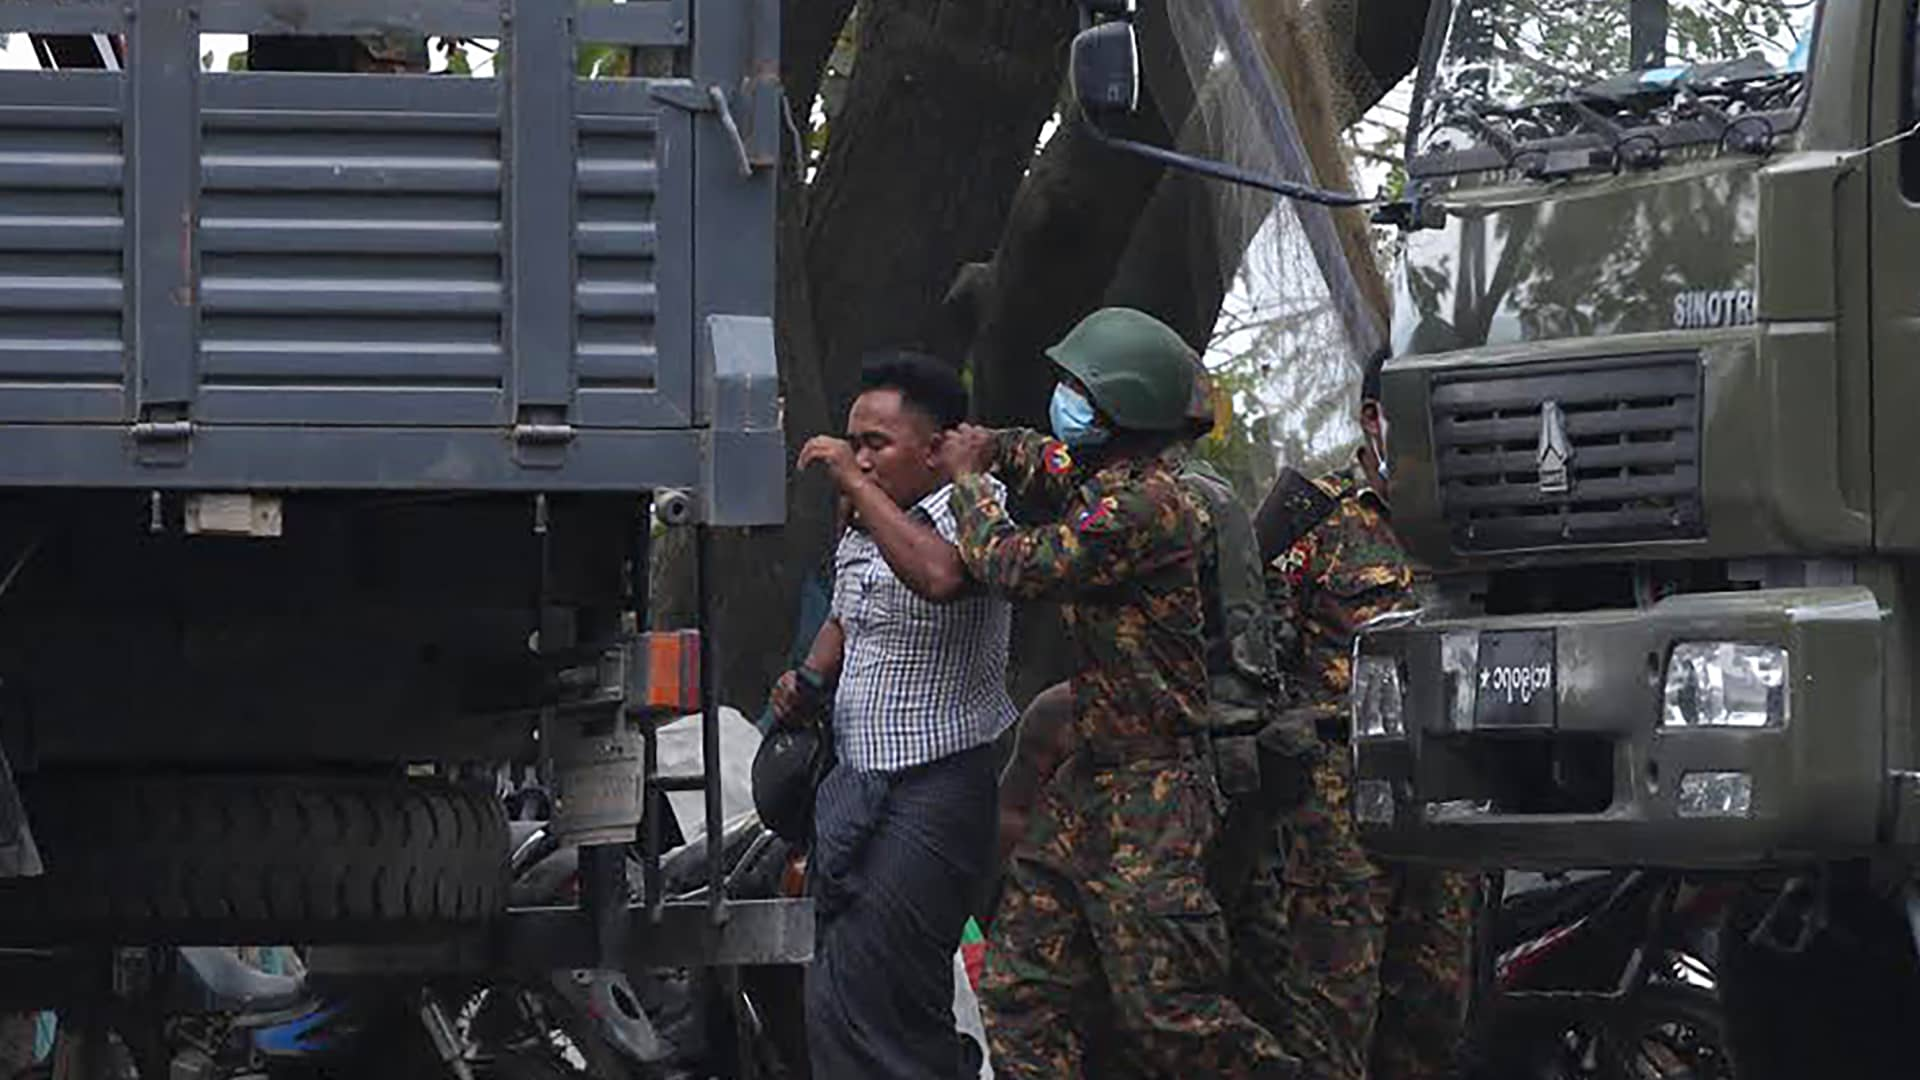 A protester is led away after being detained by security forces during a demonstration against the military coup in Mandalay on February 20, 2021.